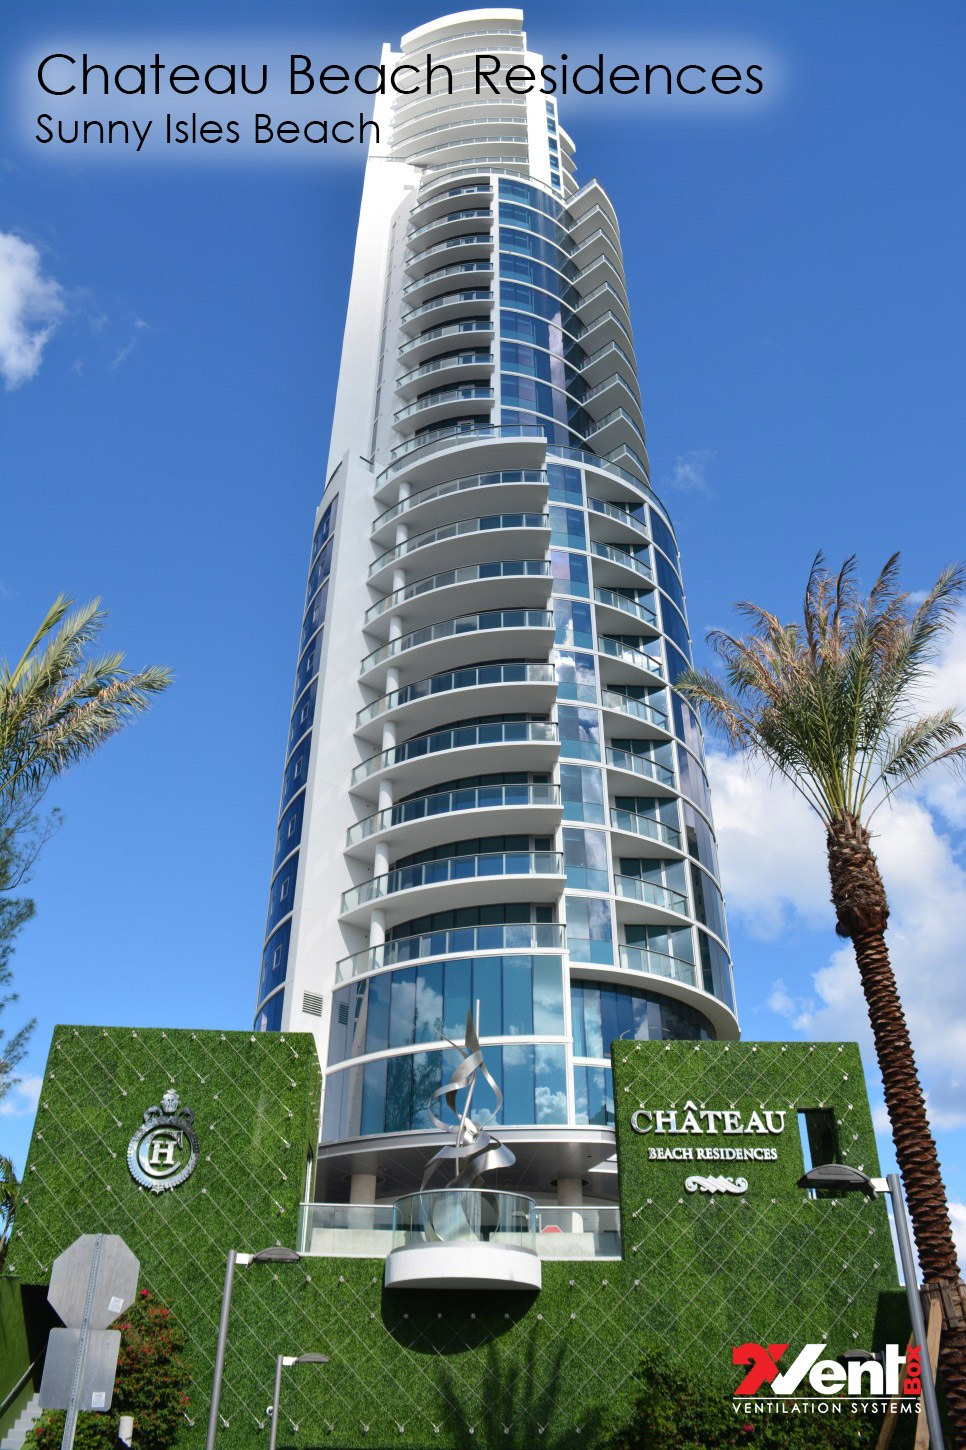 Chateau Beach Residences